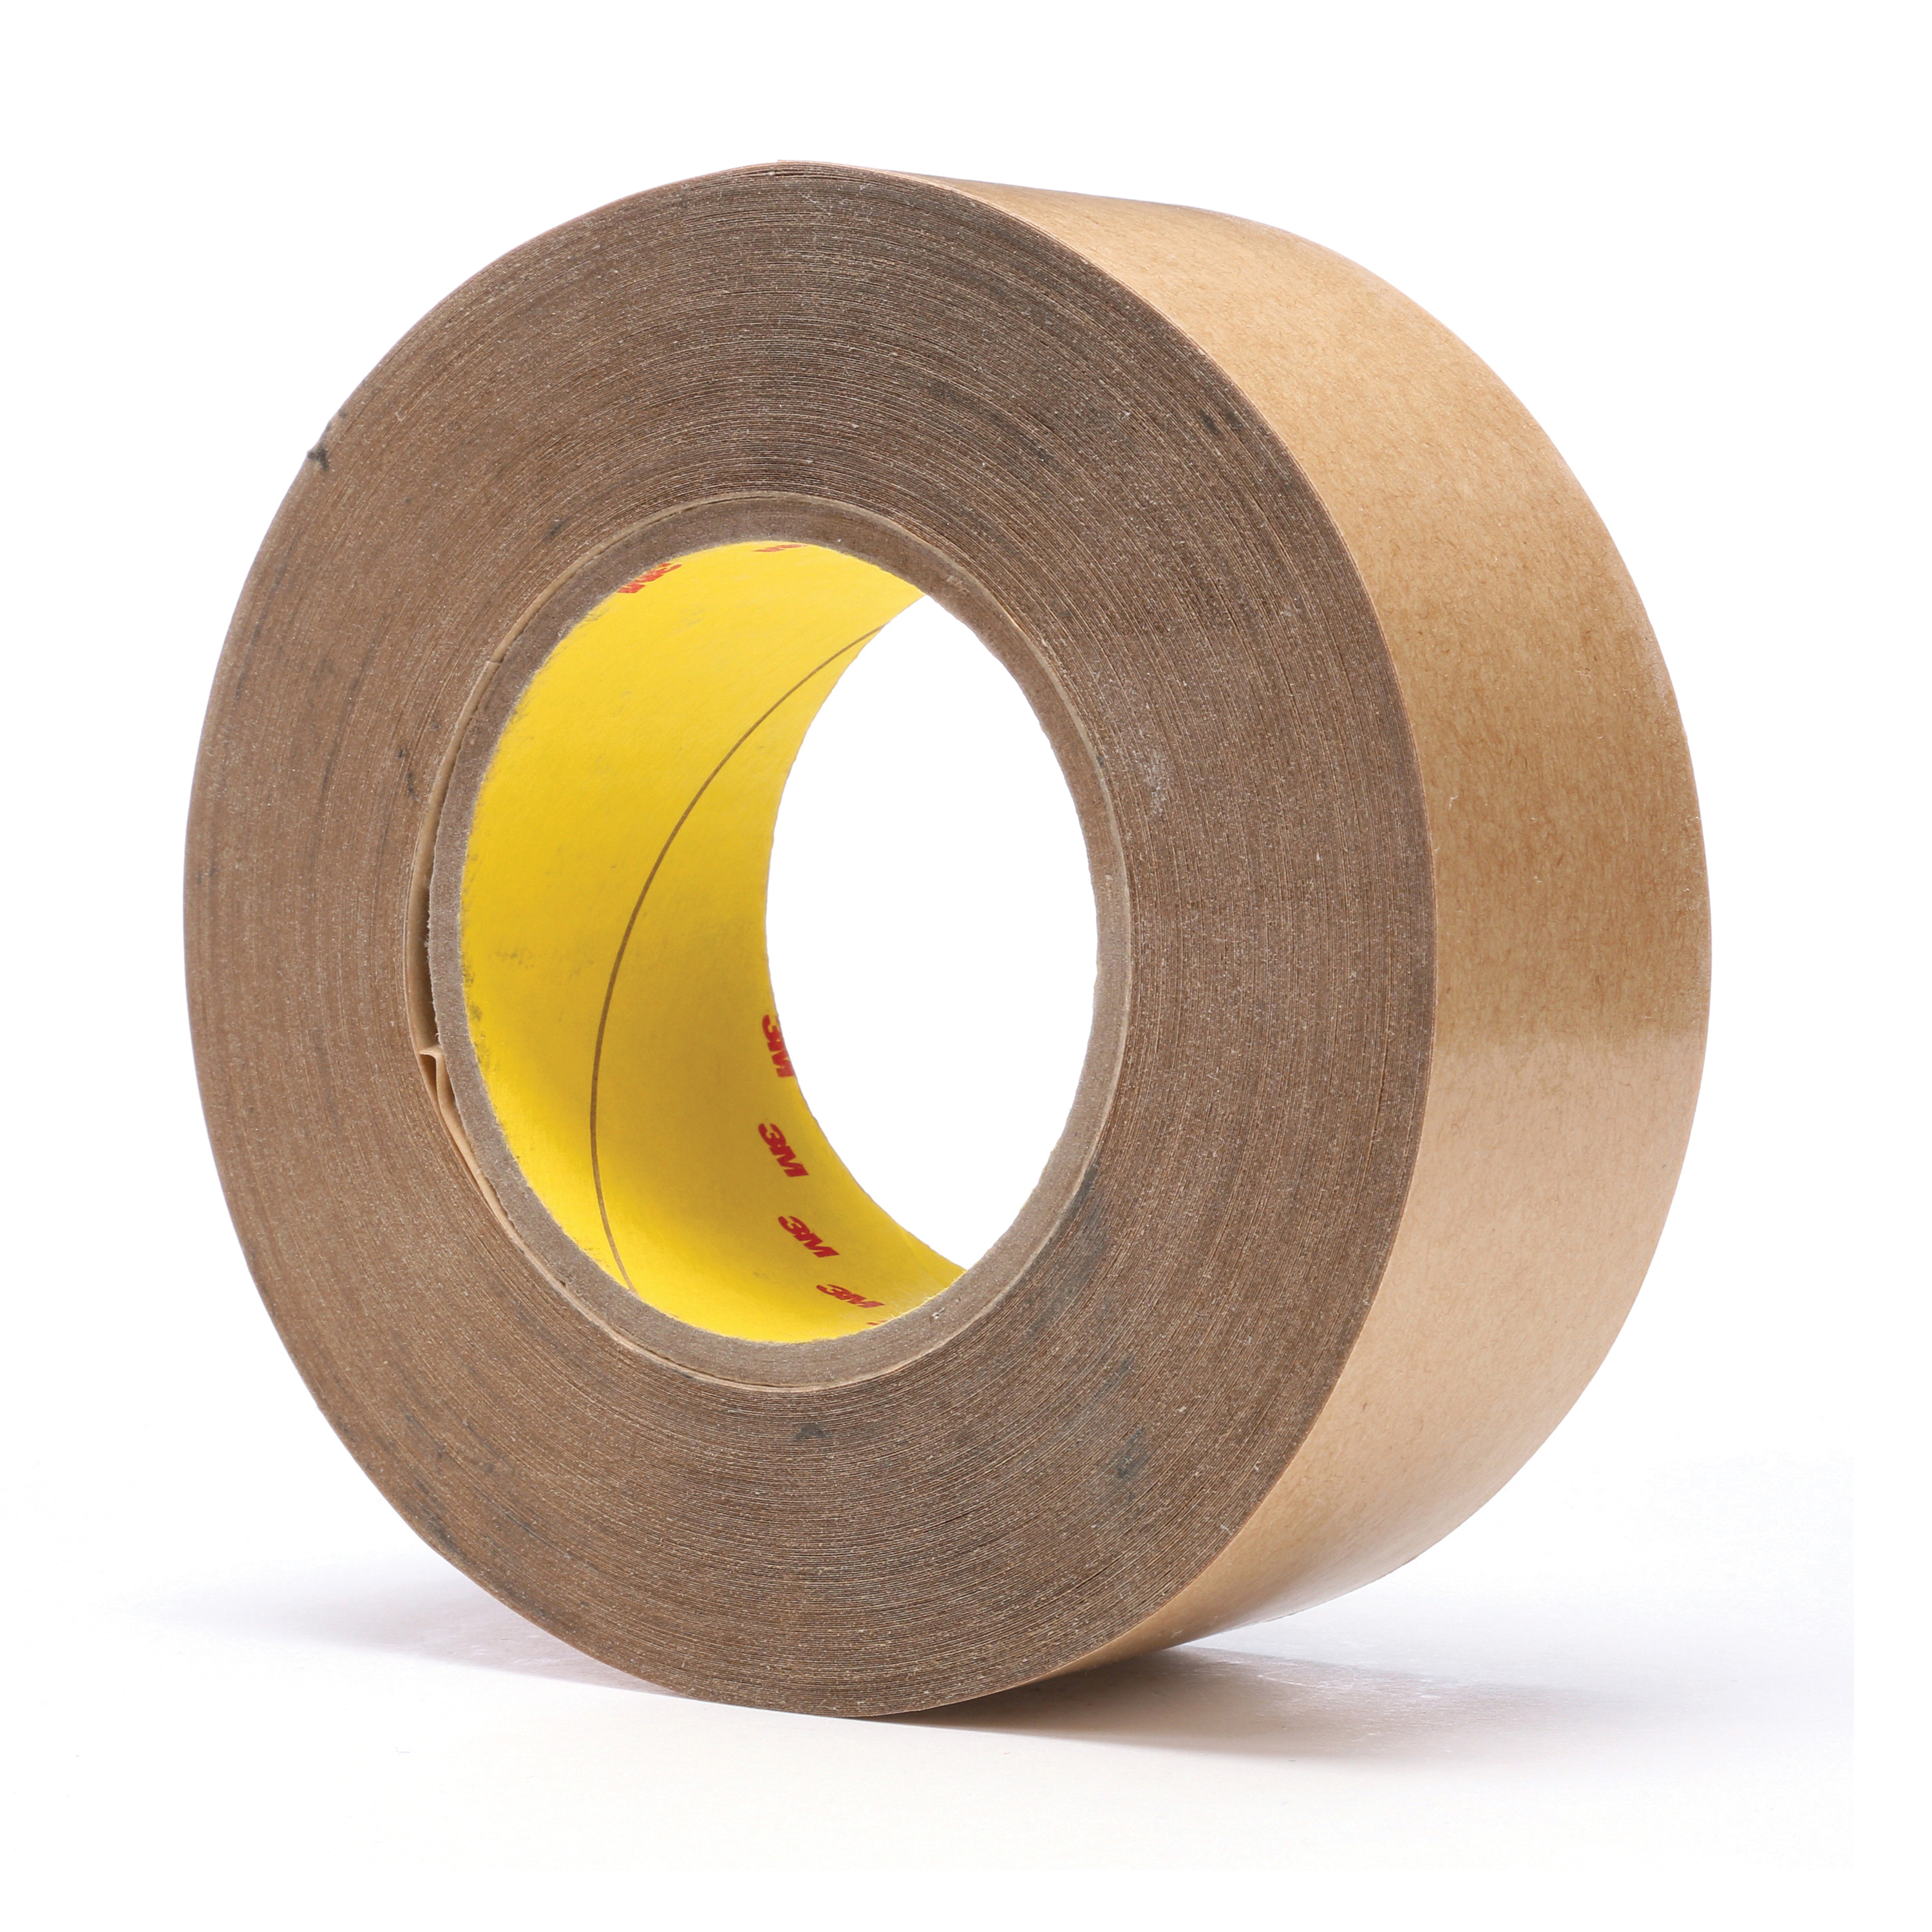 3M™ 021200-04851 General Purpose High Tack Adhesive Transfer Tape, 60 yd L x 2 in W, 8.5 mil THK, 5 mil 300 Acrylic Adhesive, Clear